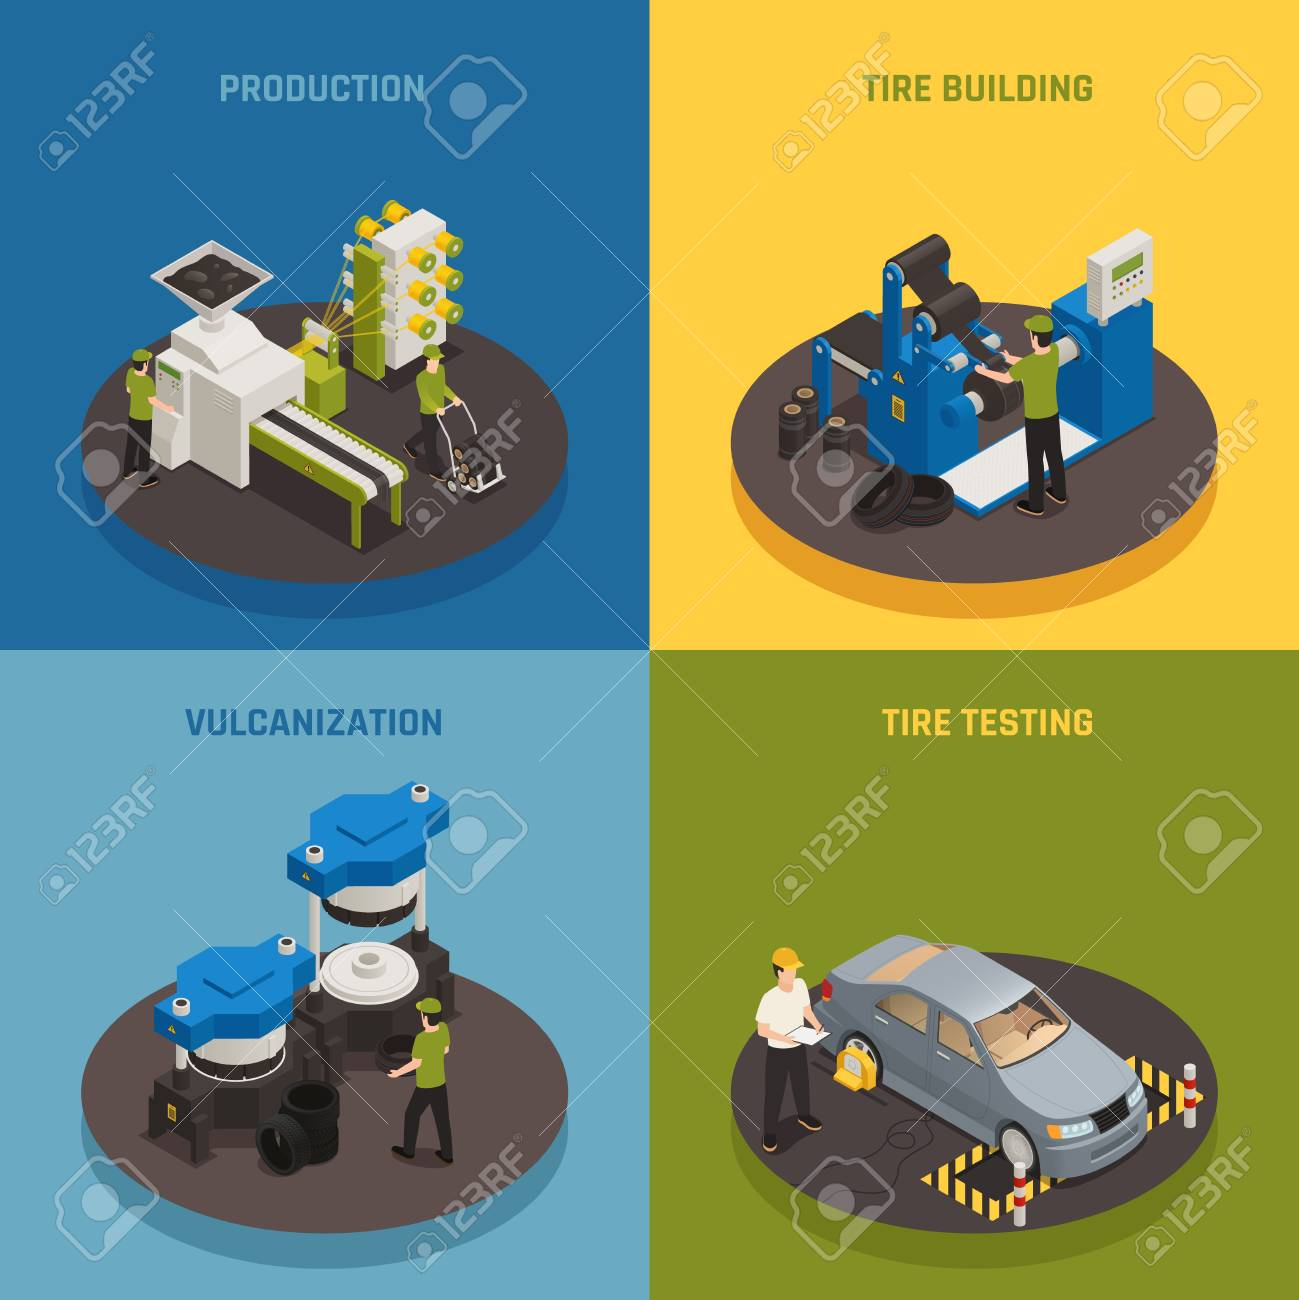 Tire production isometric design concept with industrial equipment and staff product creation and testing isolated vector illustration - 103877099